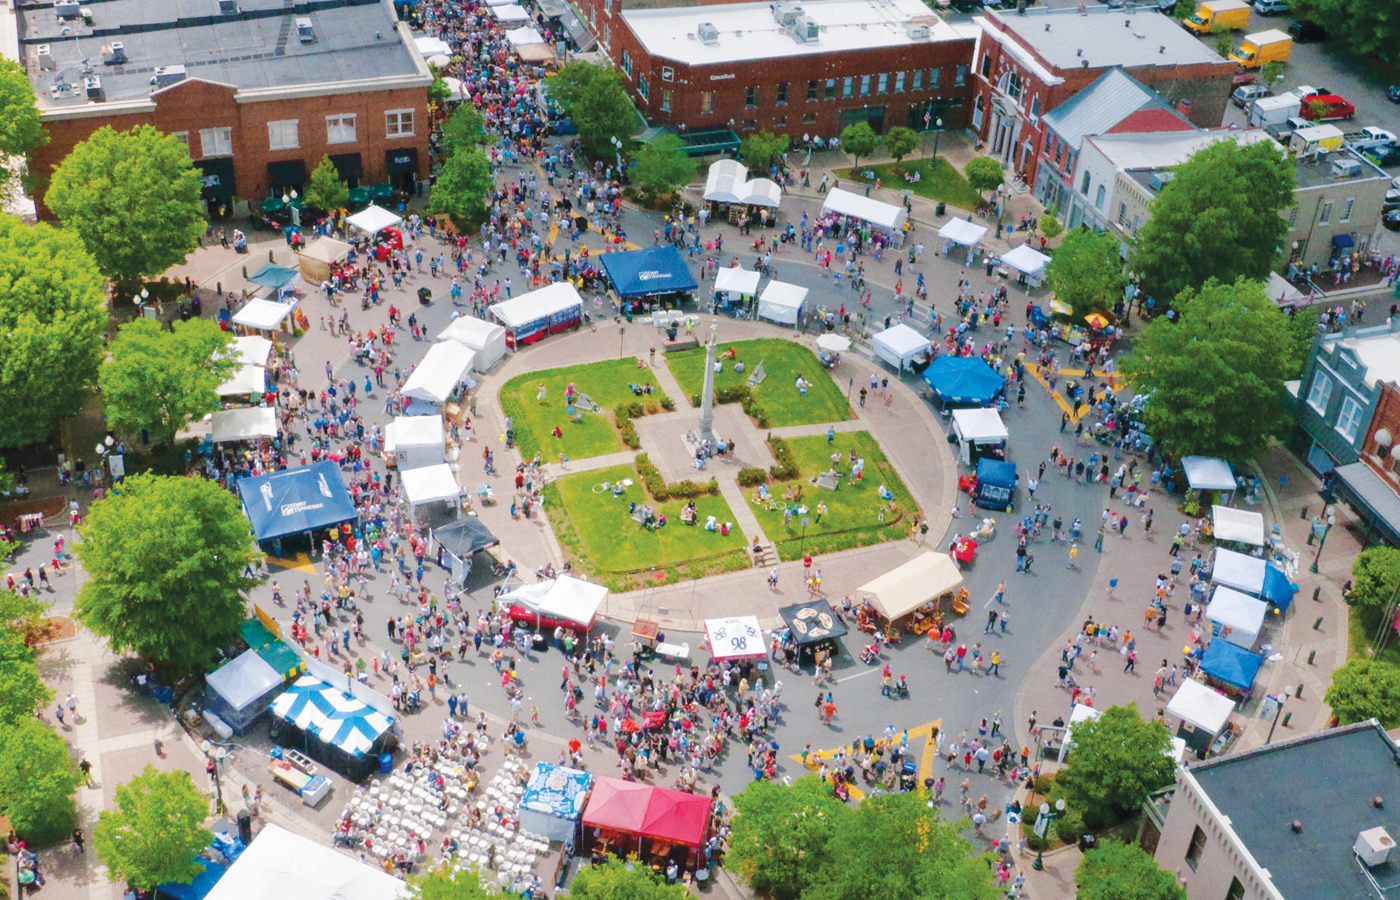 What's New at Main Street Festival